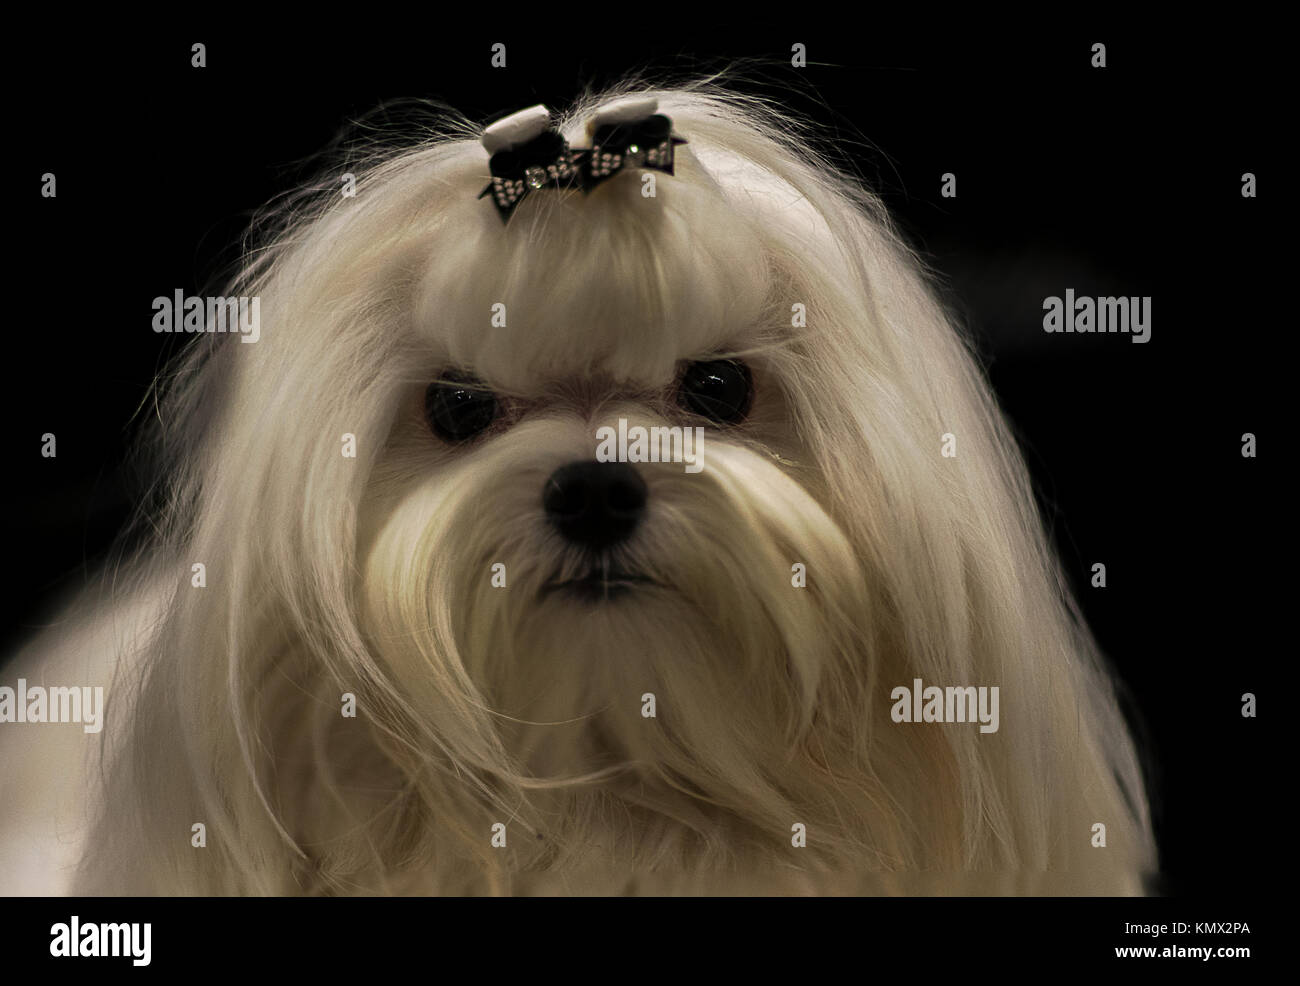 White Show Groomed Maltese Dog with Hair Bow in Front of Black Background, Long Fur, Toy Group Stock Photo